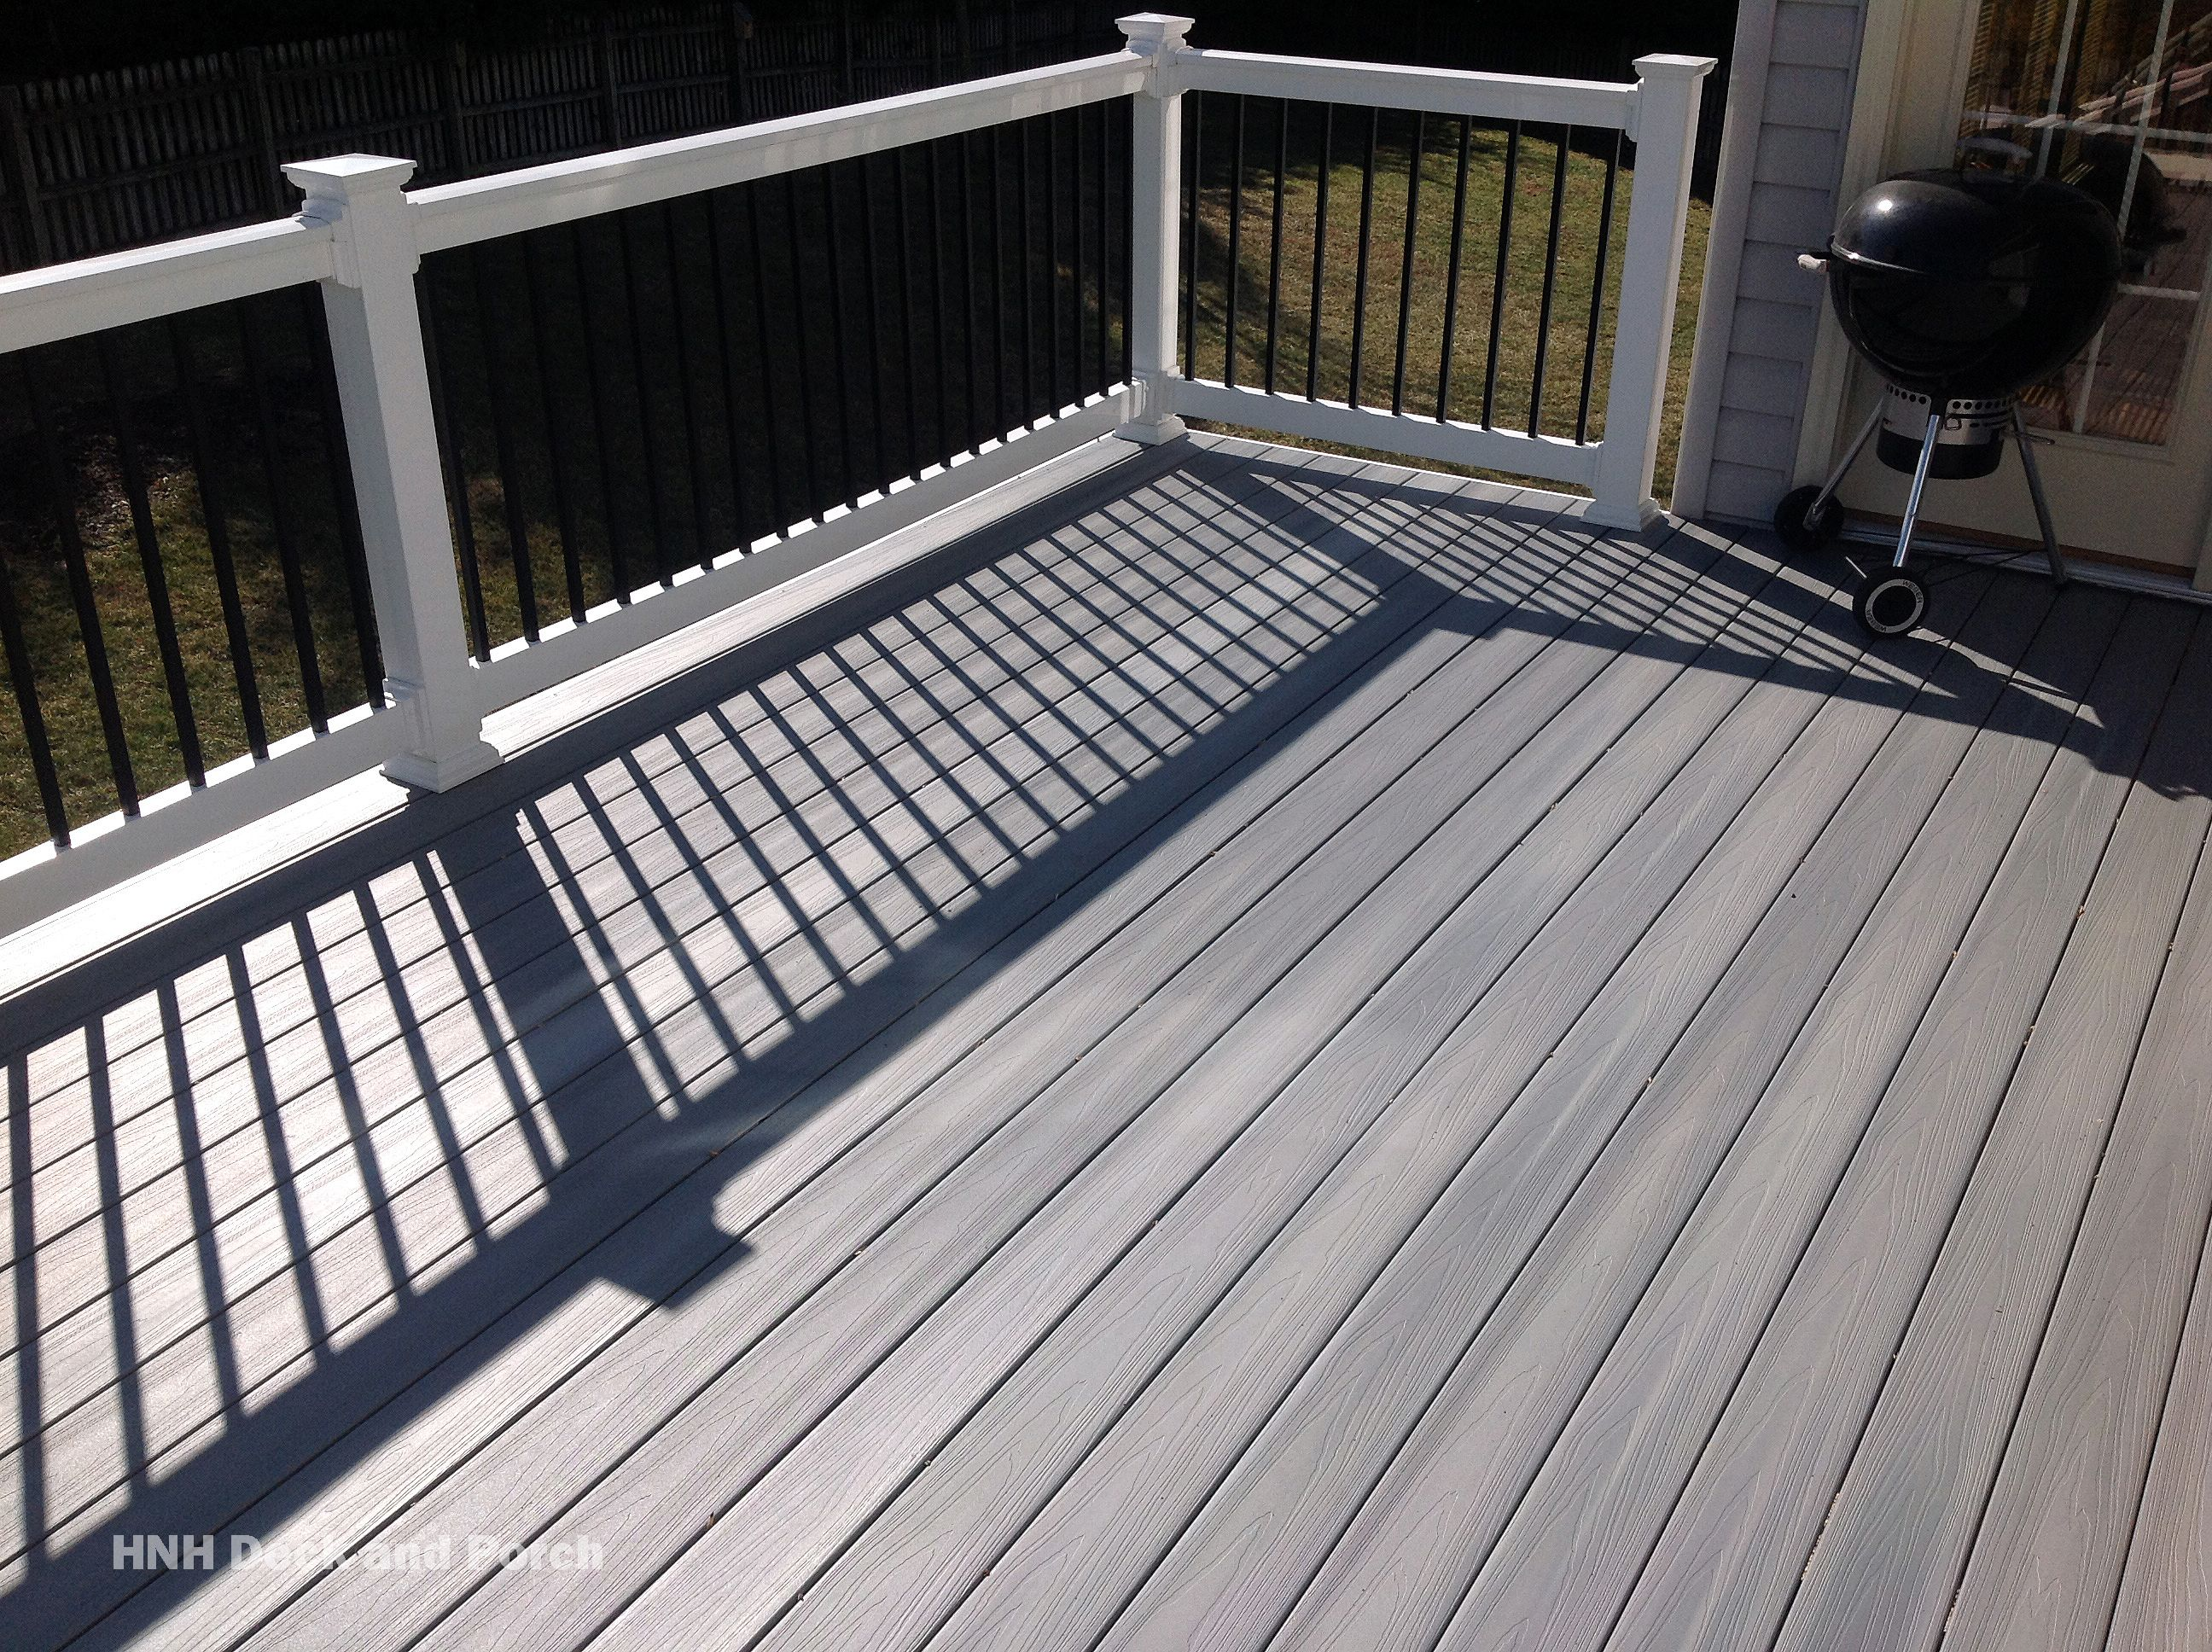 Composite Deck Using Fiberondecking Capstock Castle Grey Decking With White Pvc Railing And Black Square